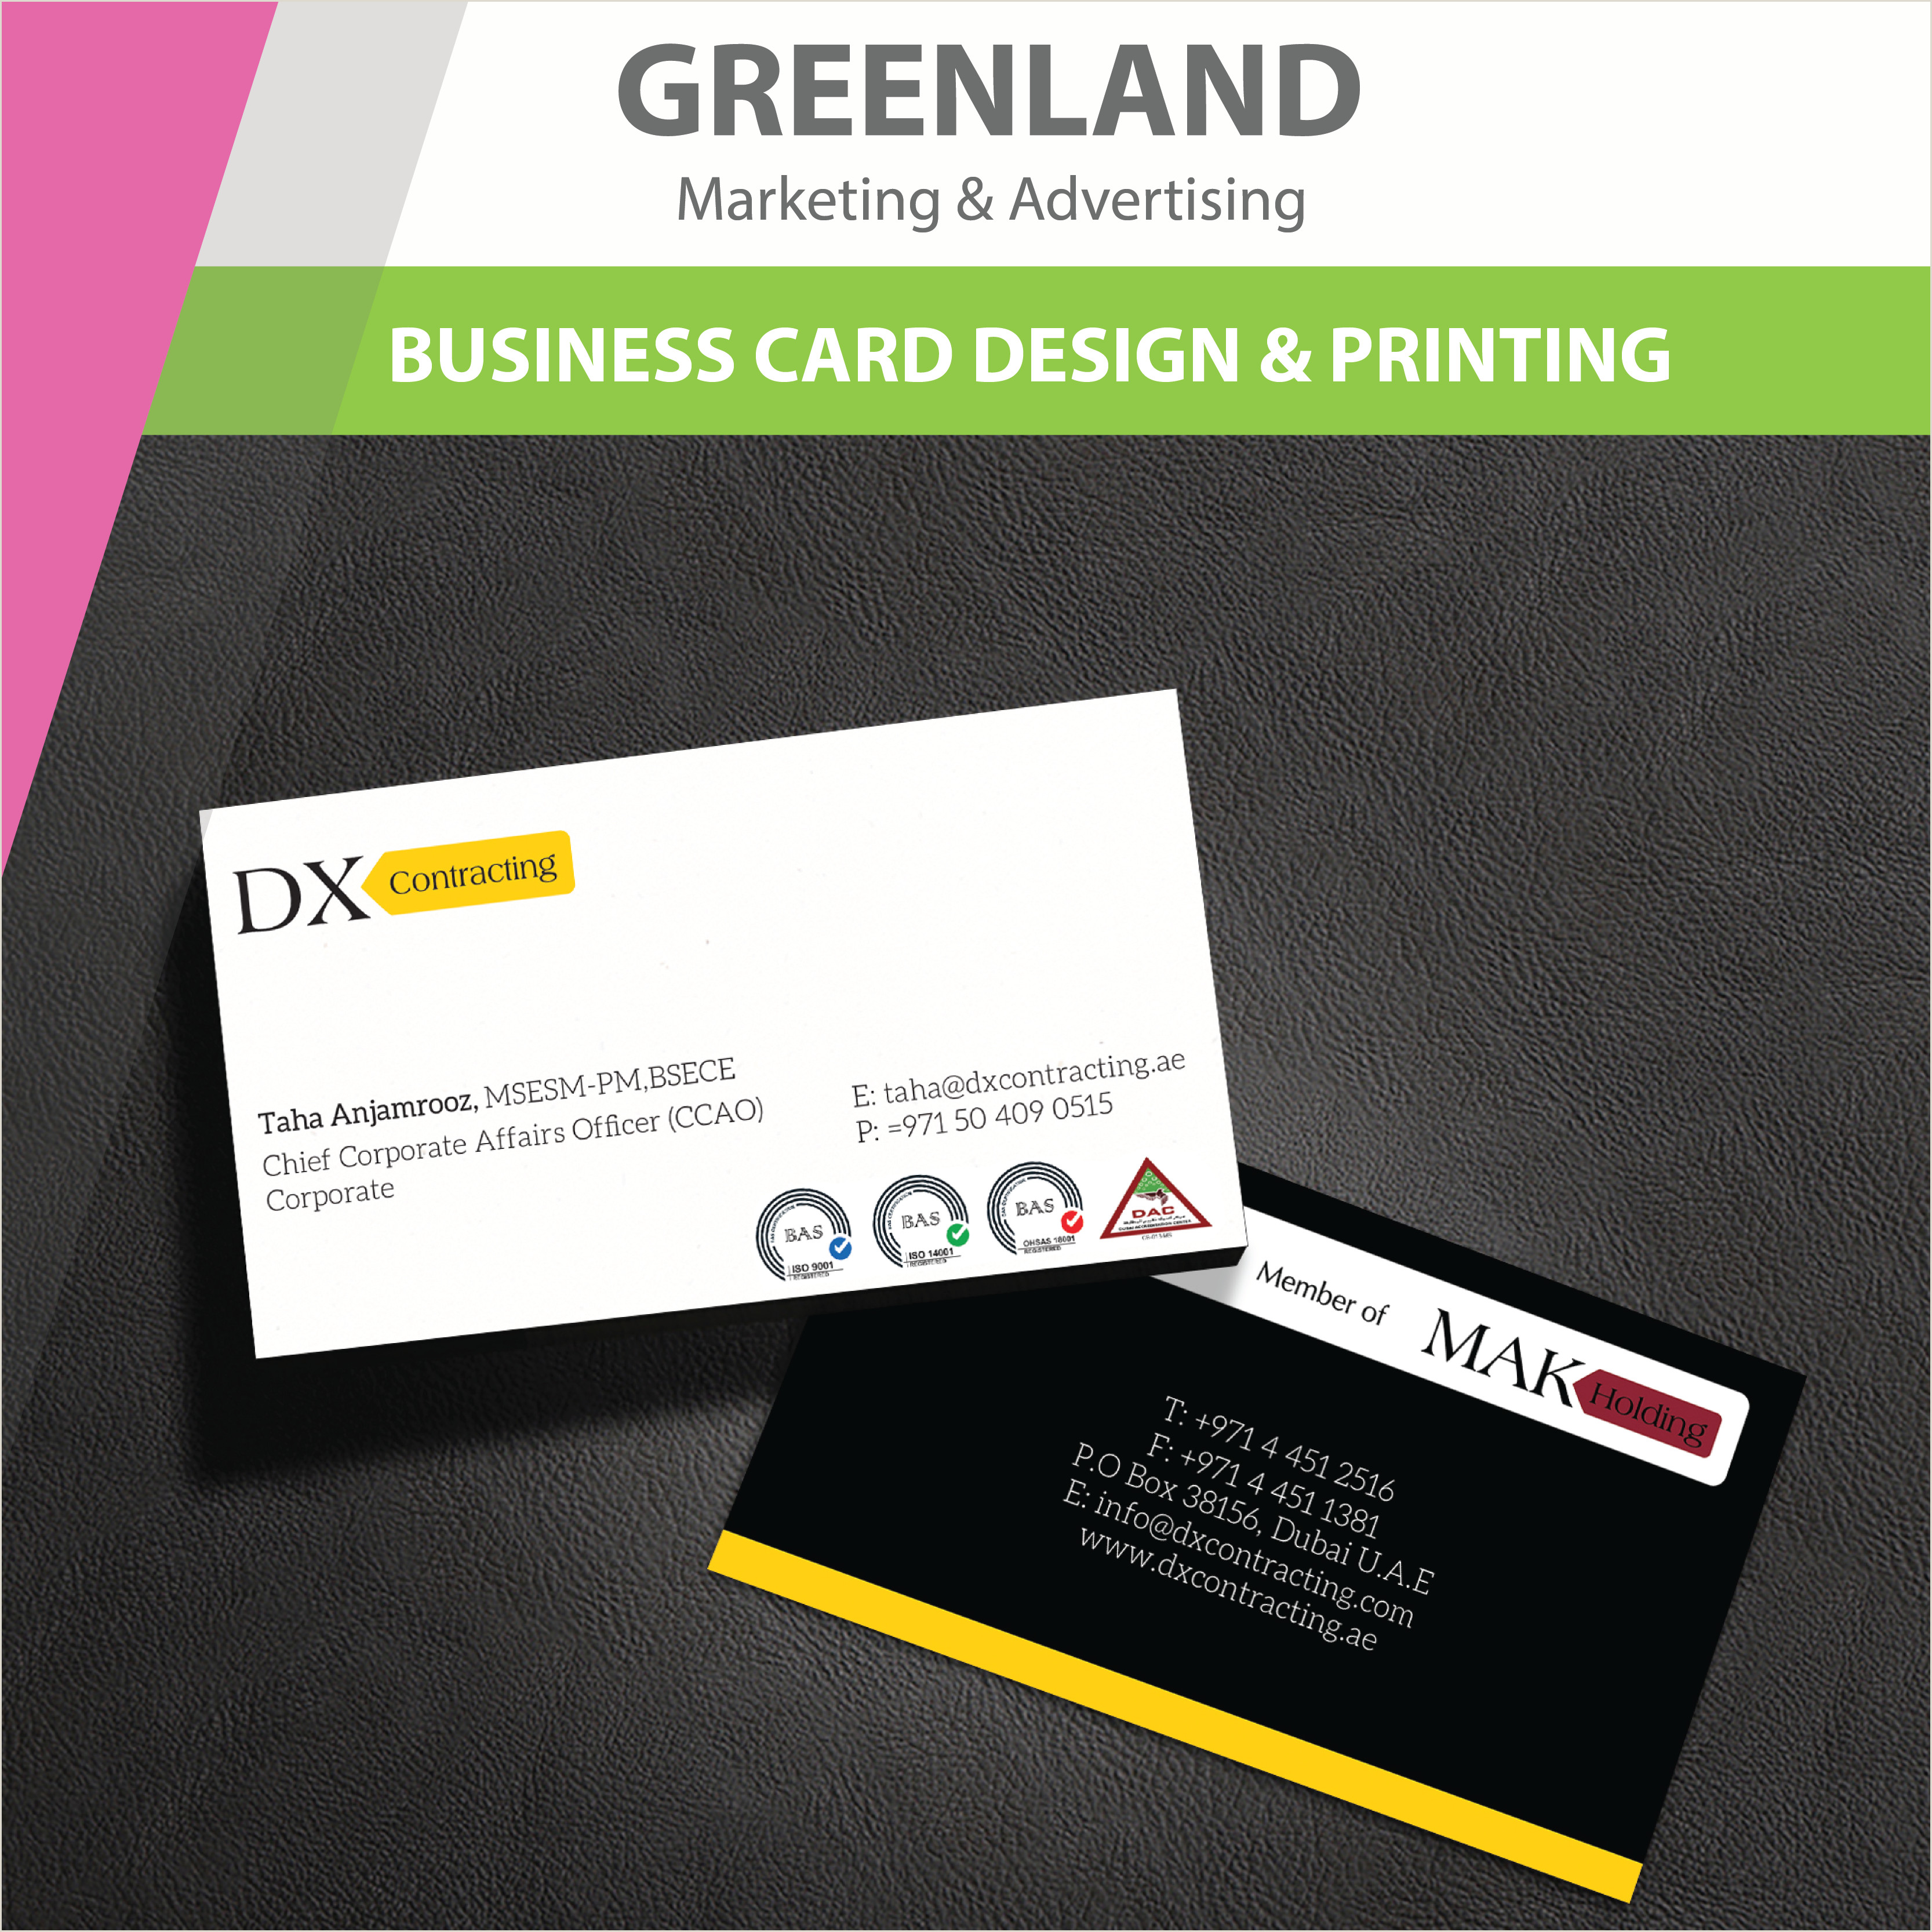 How To Make A Good Business Card A Simple Yet Elegant And Corporate Looking Businesscard